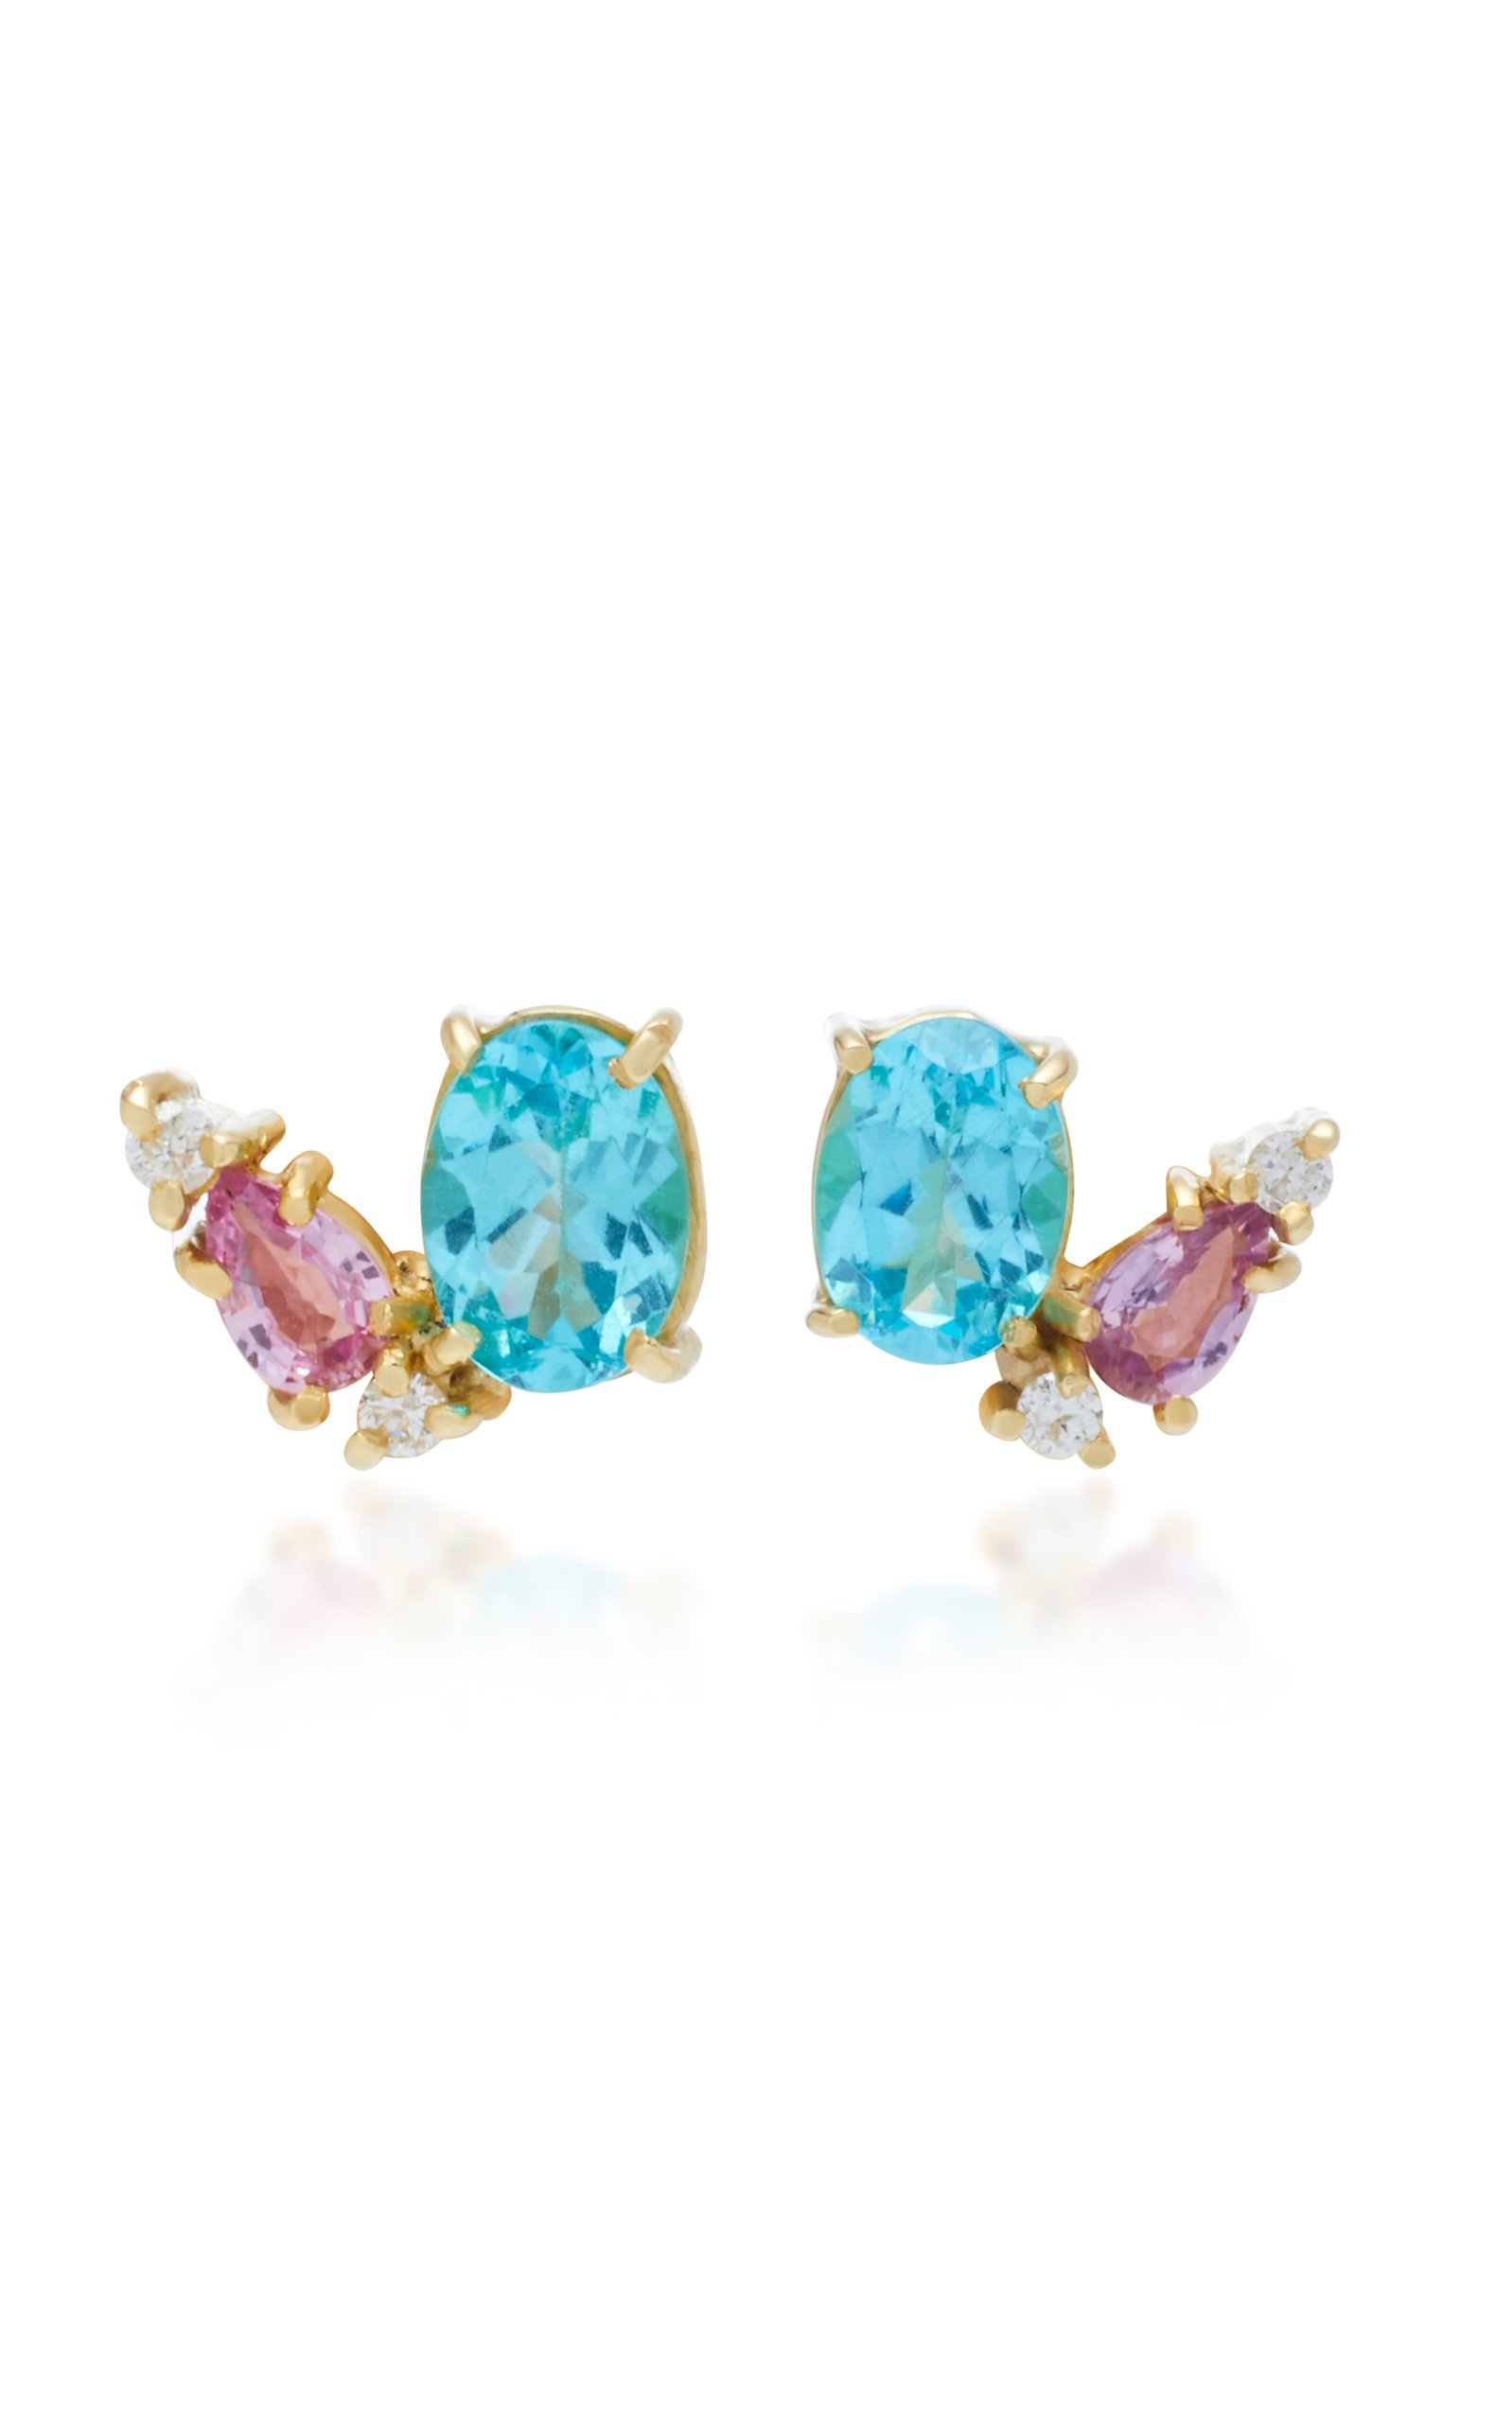 Carolina Neves 18K Gold Apatite Sapphire And Diamond Earrings